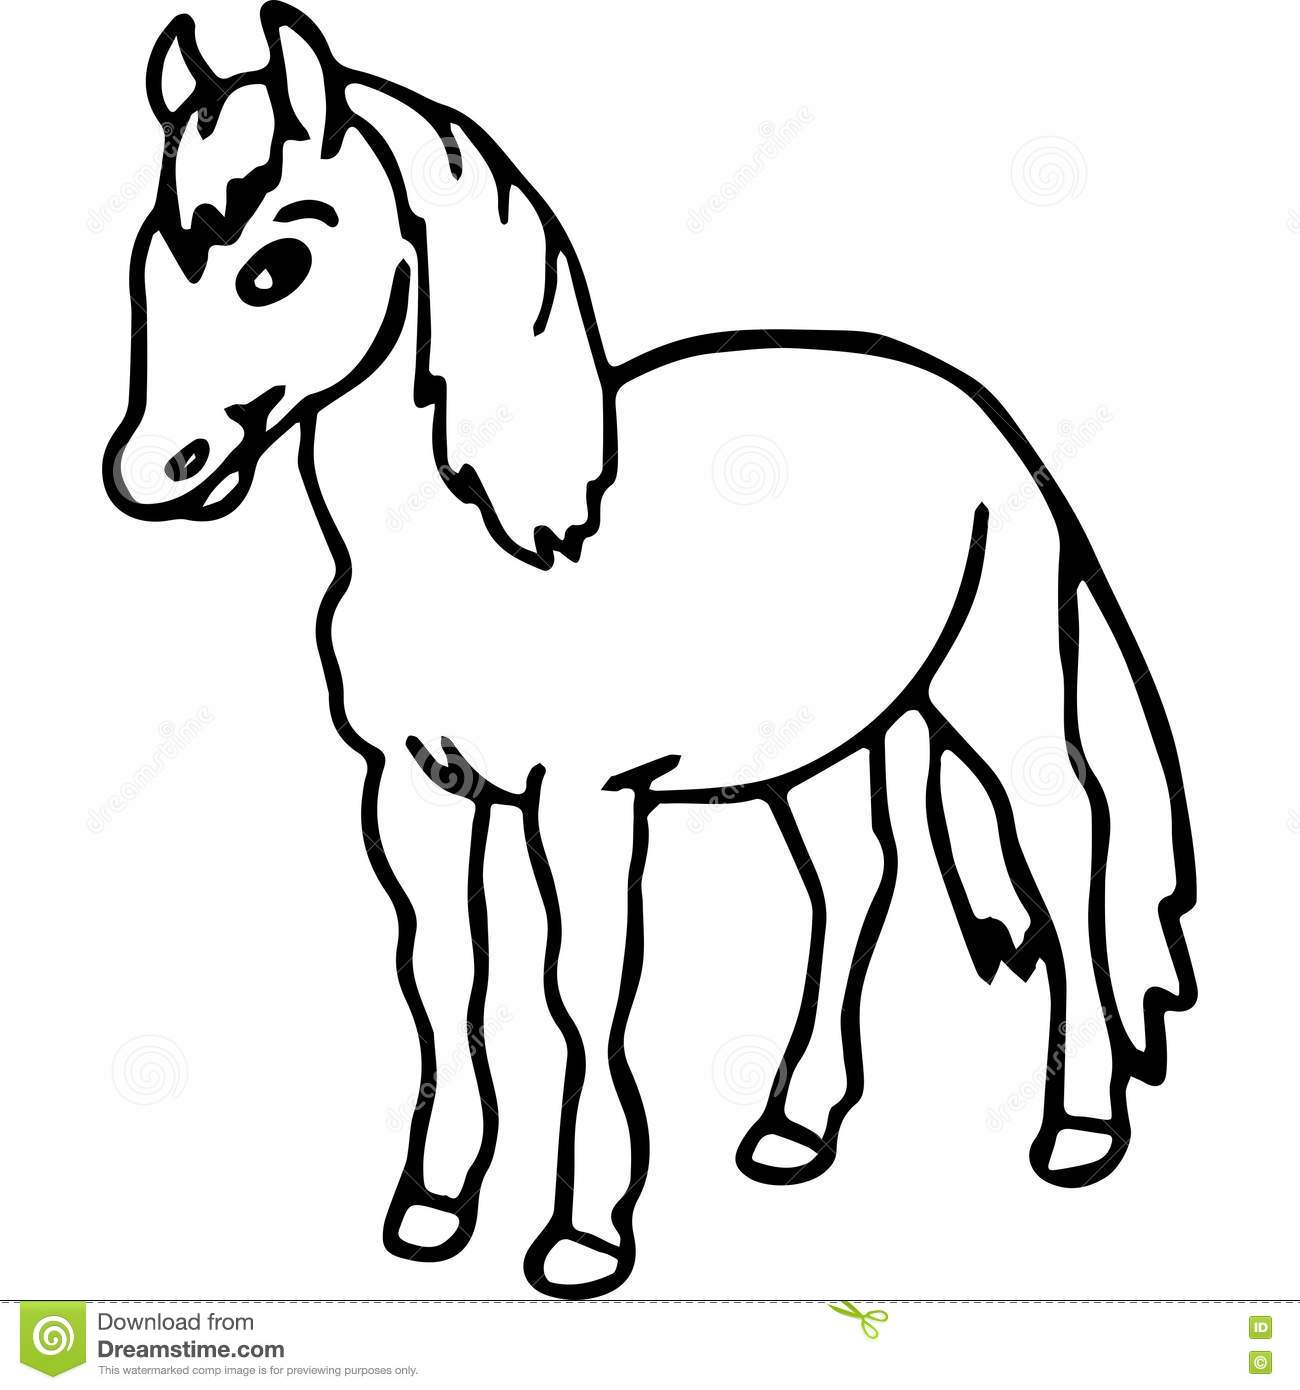 Horse kids coloring page stock illustration. Illustration